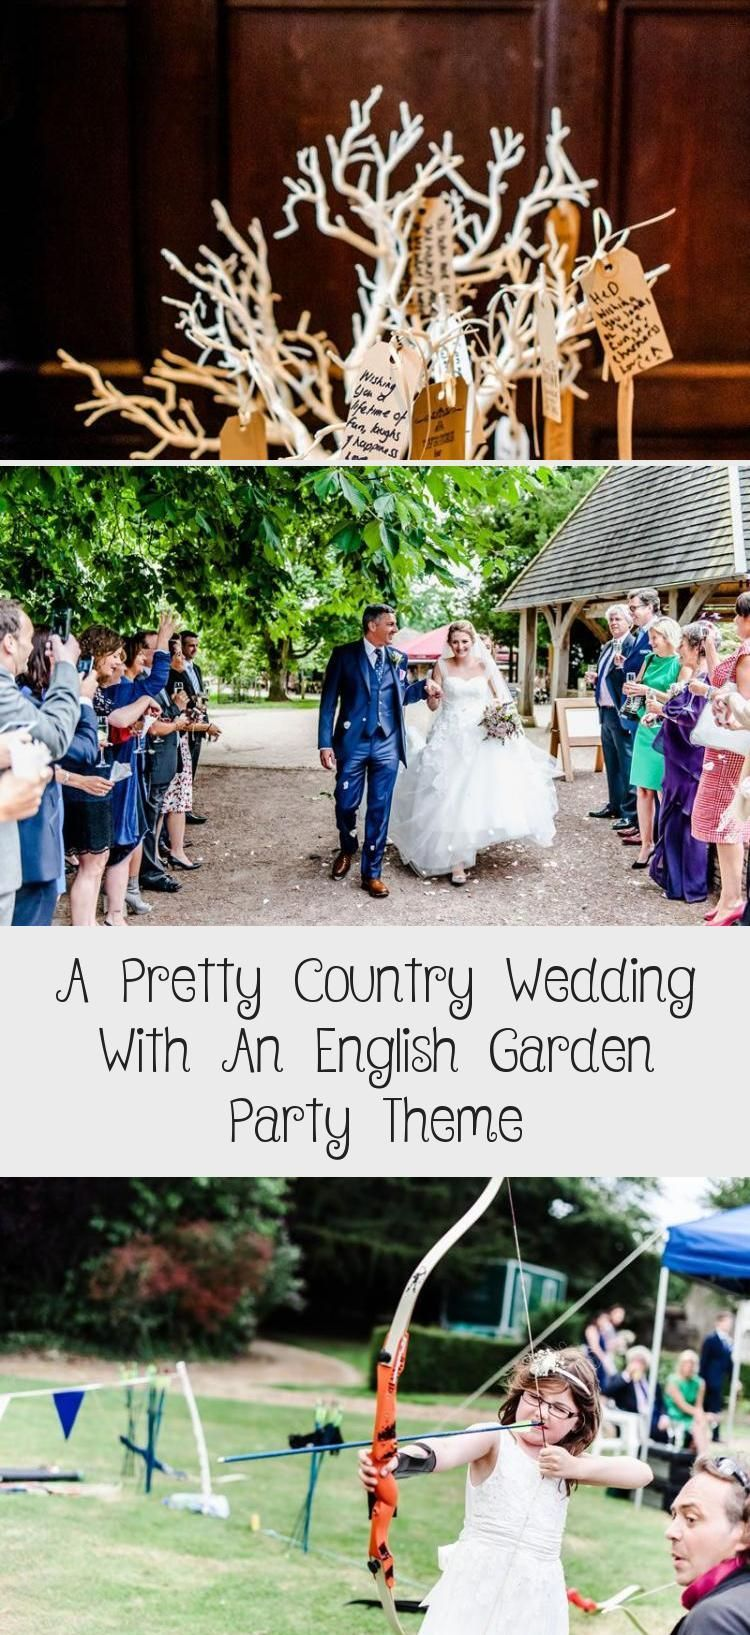 A pretty country wedding with an English garden party theme wedding themes A Pretty Country Wedding With An English Garden Party Theme  Pinokyo